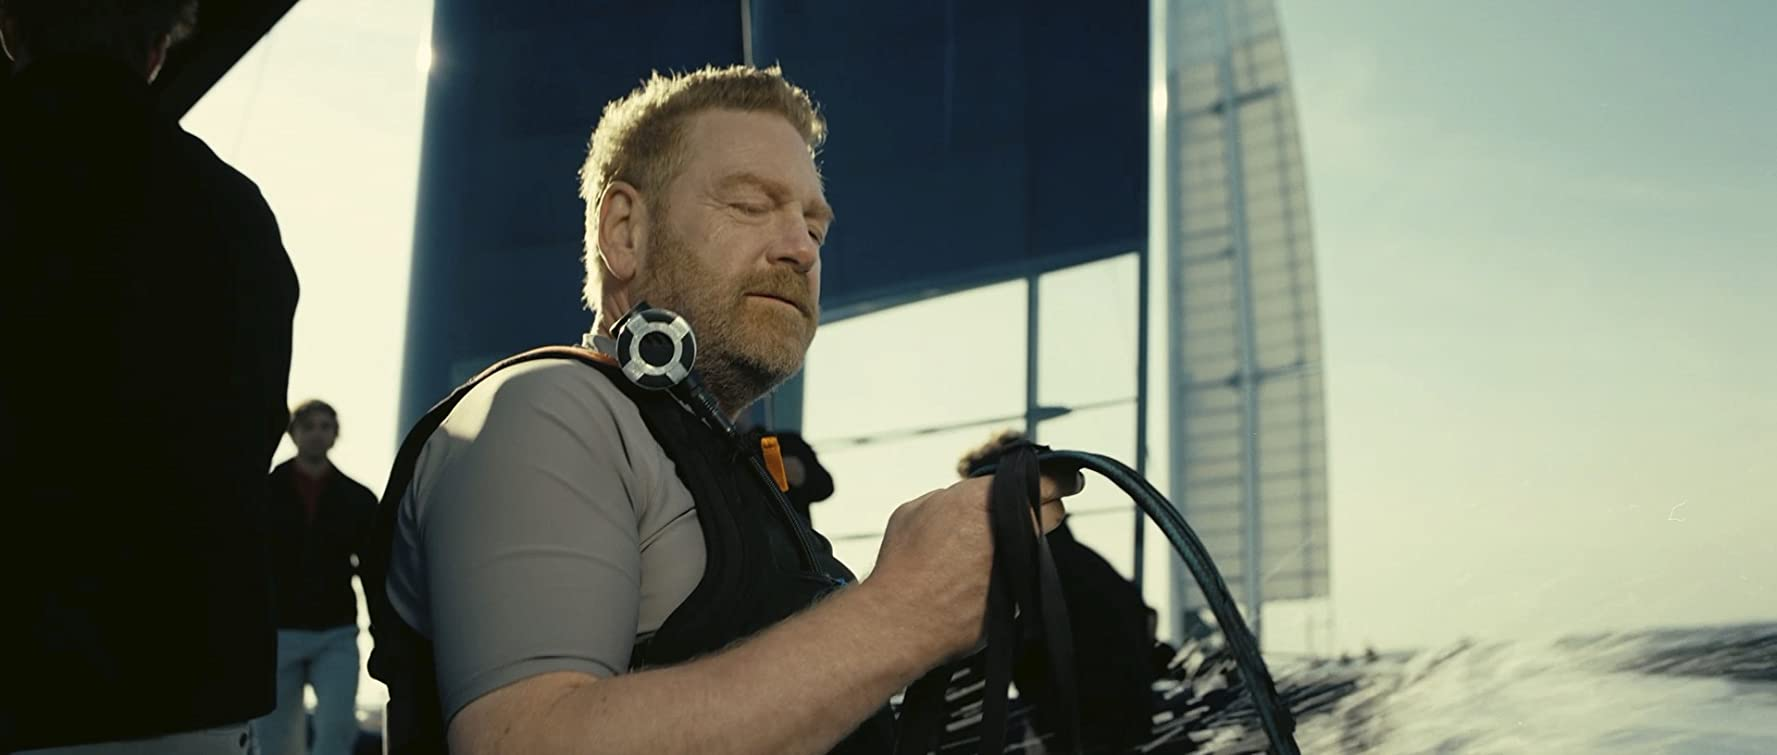 "Sir Kenneth Branagh prepares his villainous supplies in this film still from ""Tenet""."